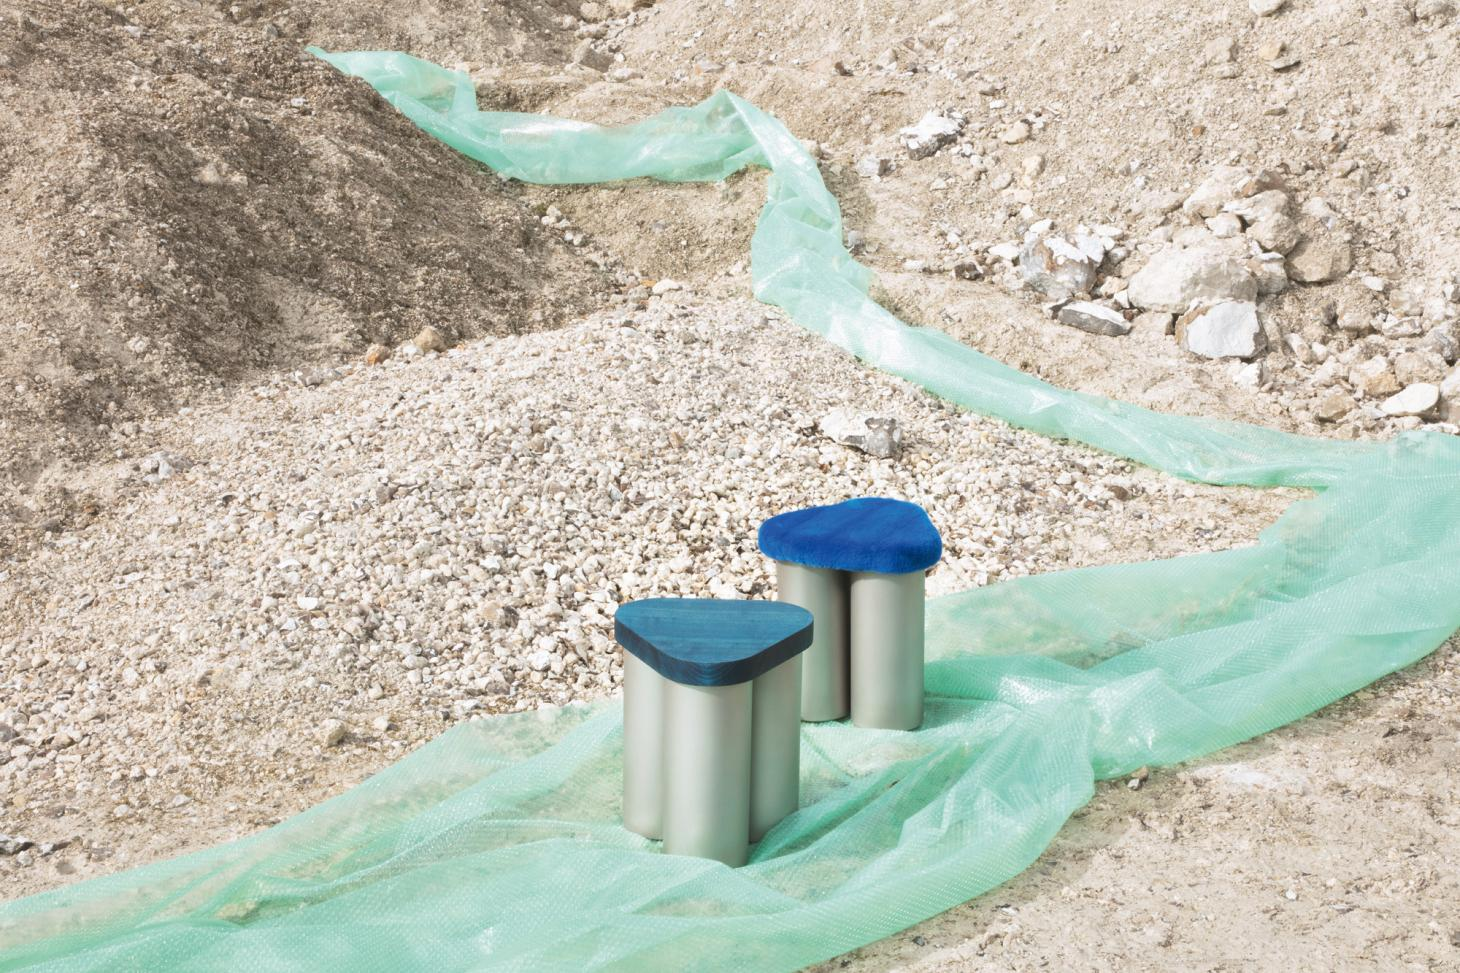 'Sit on It' stools by Poul Høilund x Tableau photographed at Faxe Kalkbrud